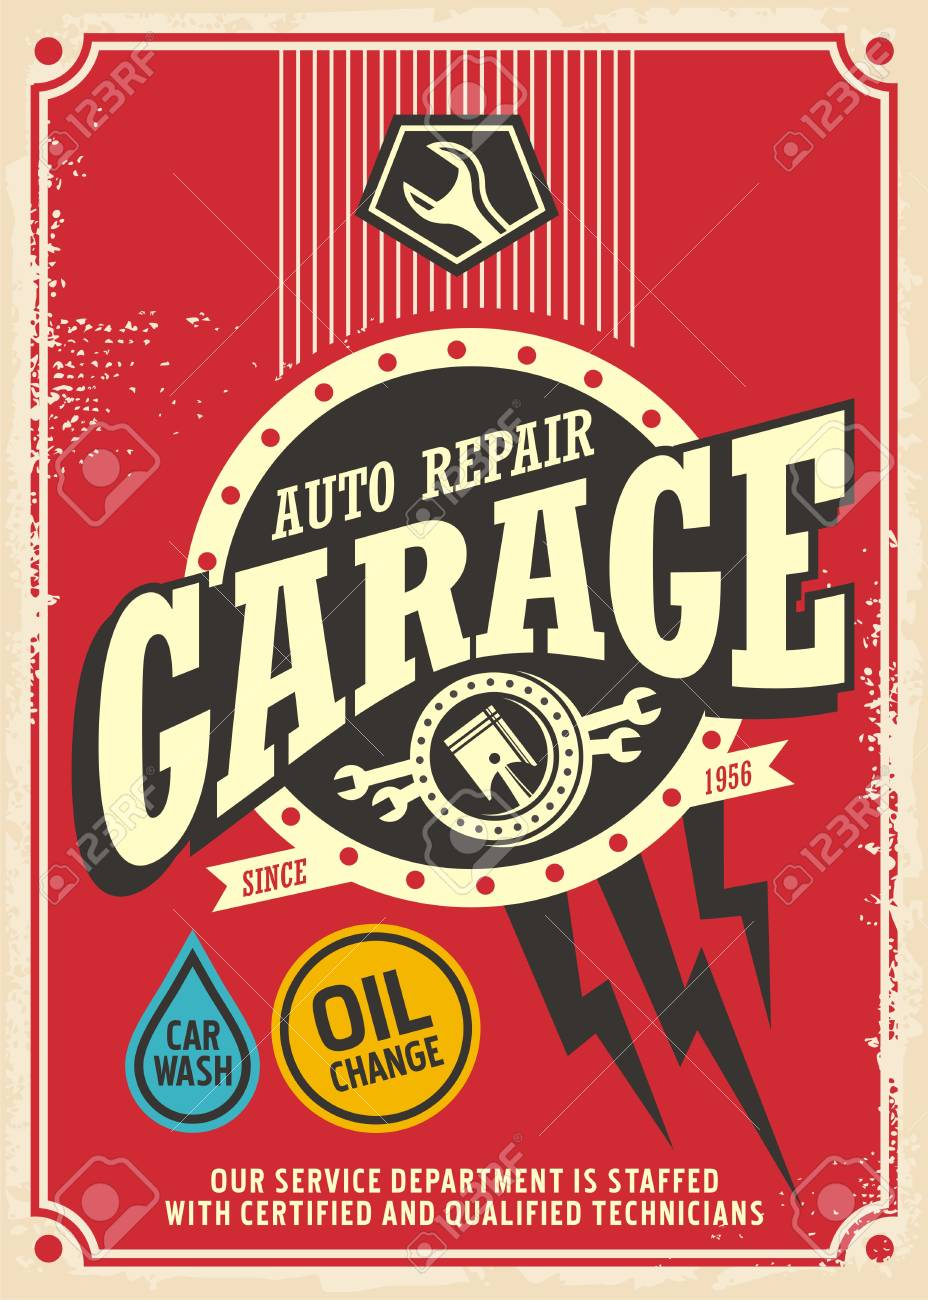 Garage Design Template Classic Garage Retro Poster Design Template Car Service And